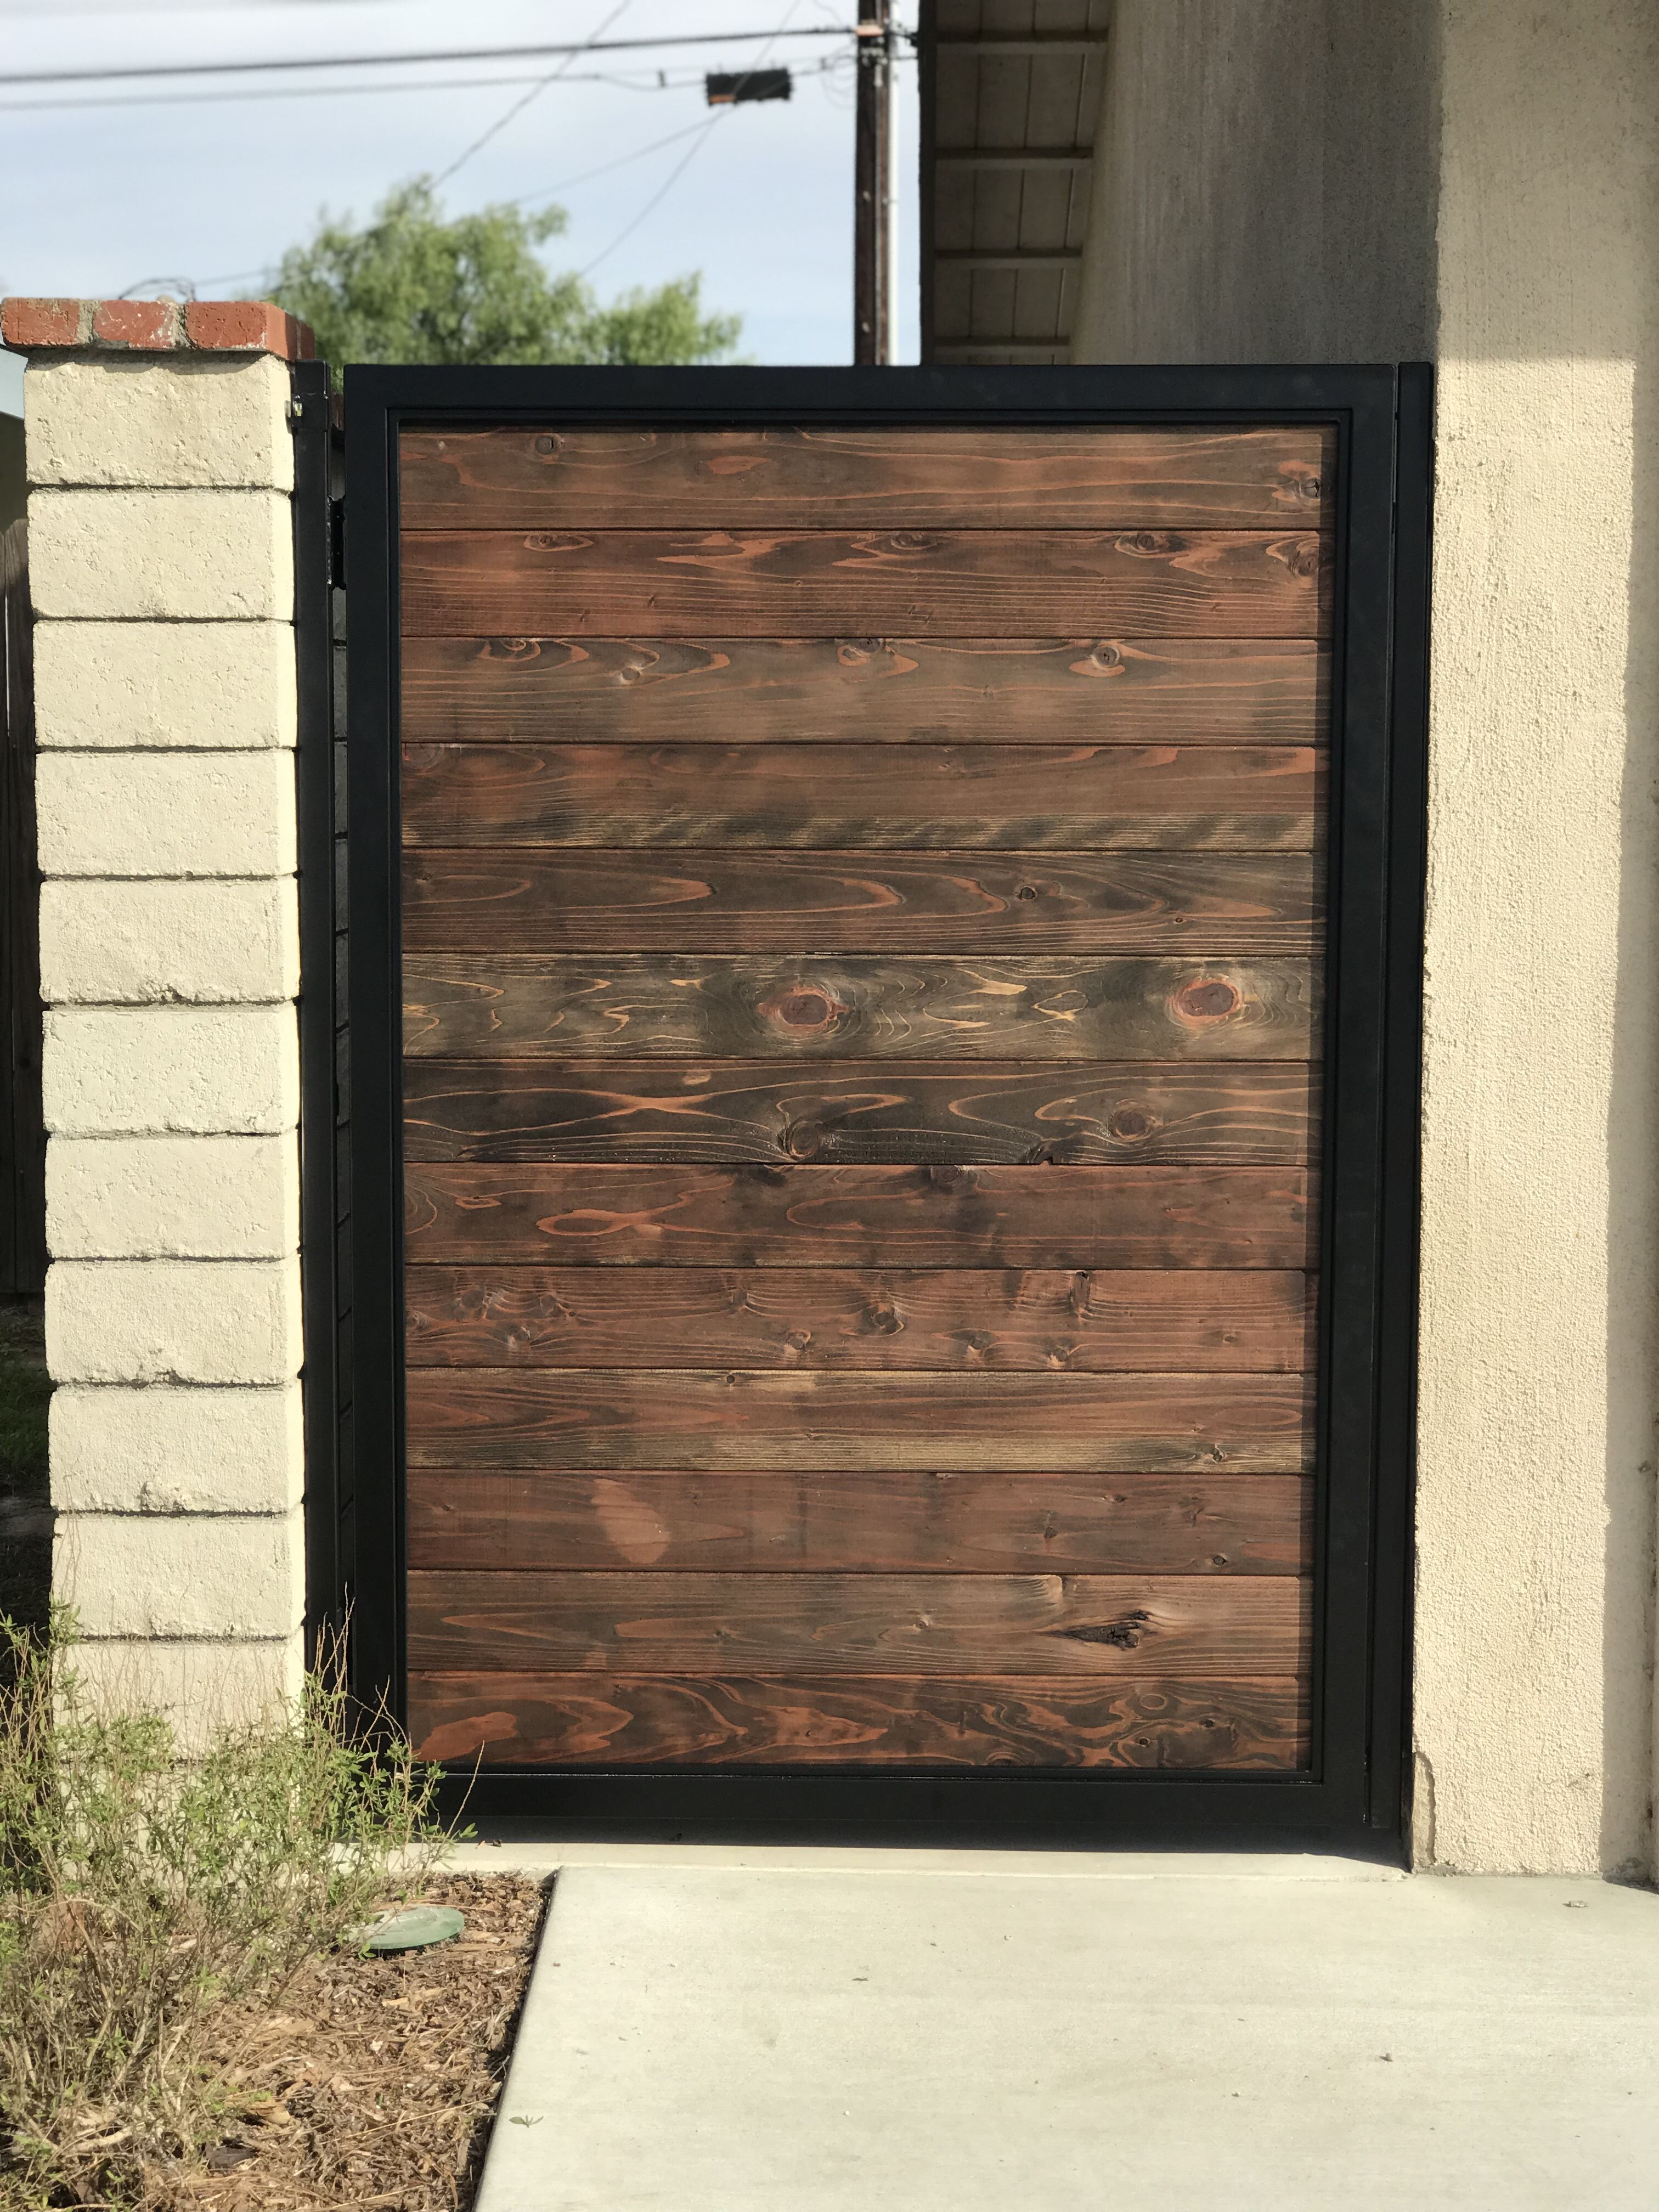 Steel Frame Gate With Stained Redwood Inserts Fence Gate Design Wood Gate Gate Wall Design